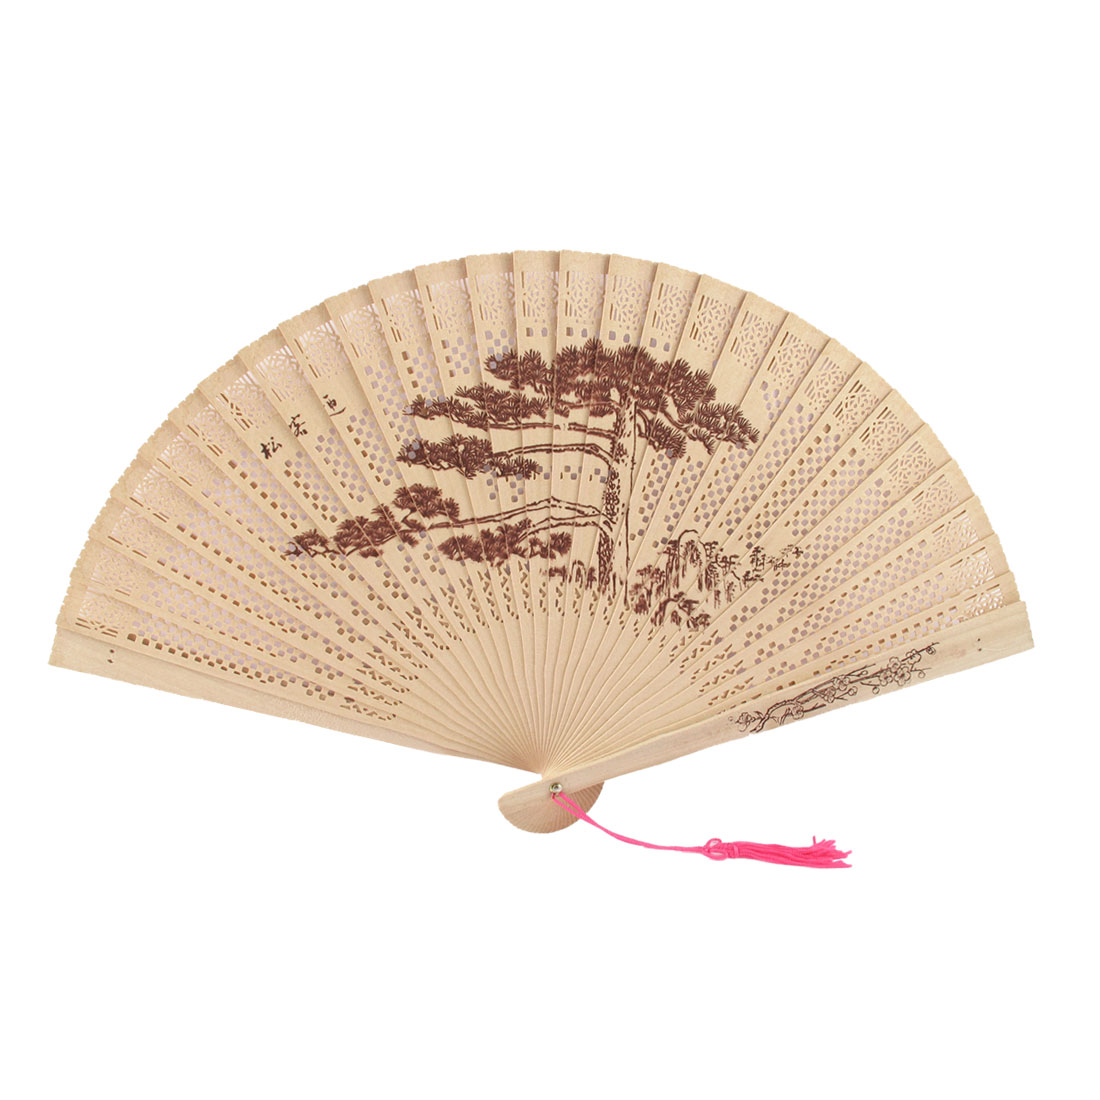 Greeting Pine Pattern Hollow Out Design Scented Wooden Folding Hand Fan Beige